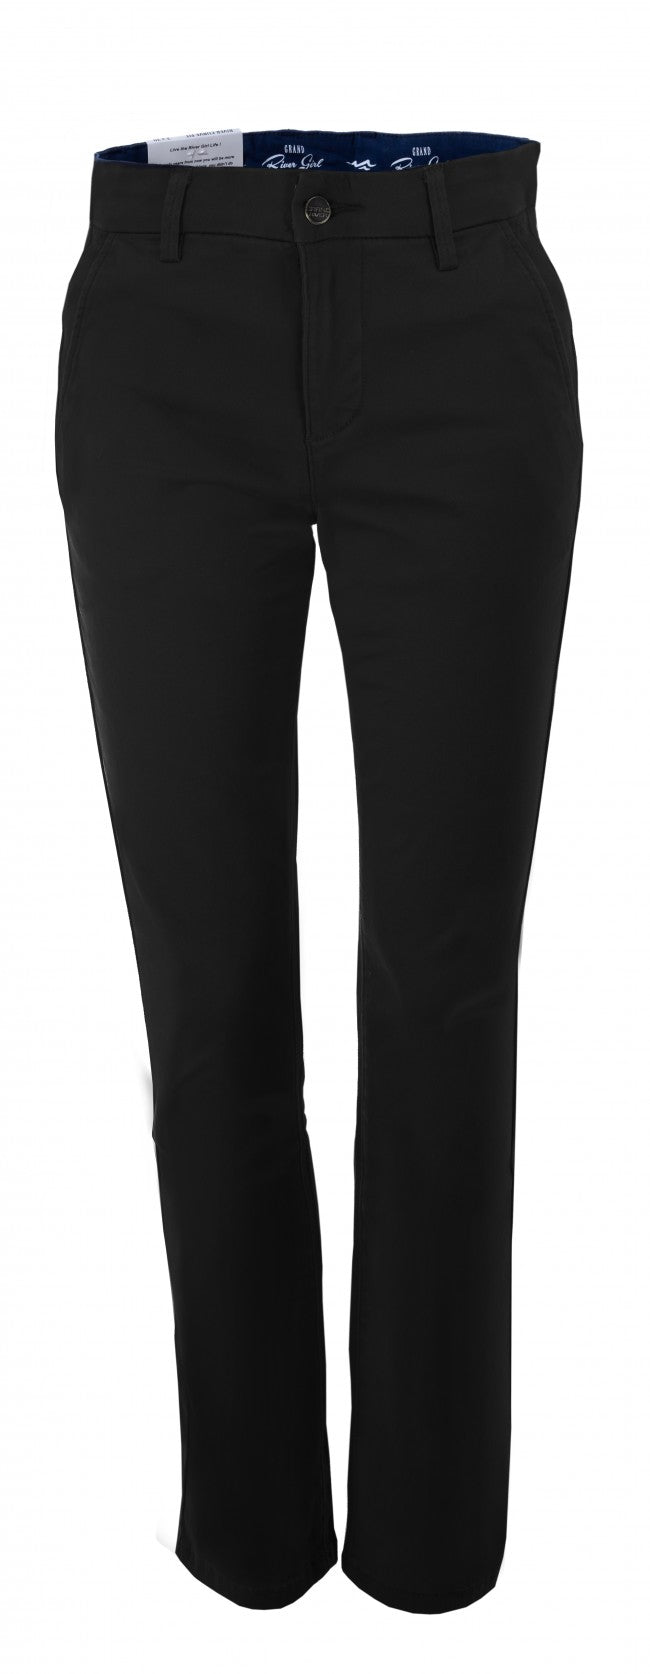 #334 River Curve Stretch - Black Twill Pant